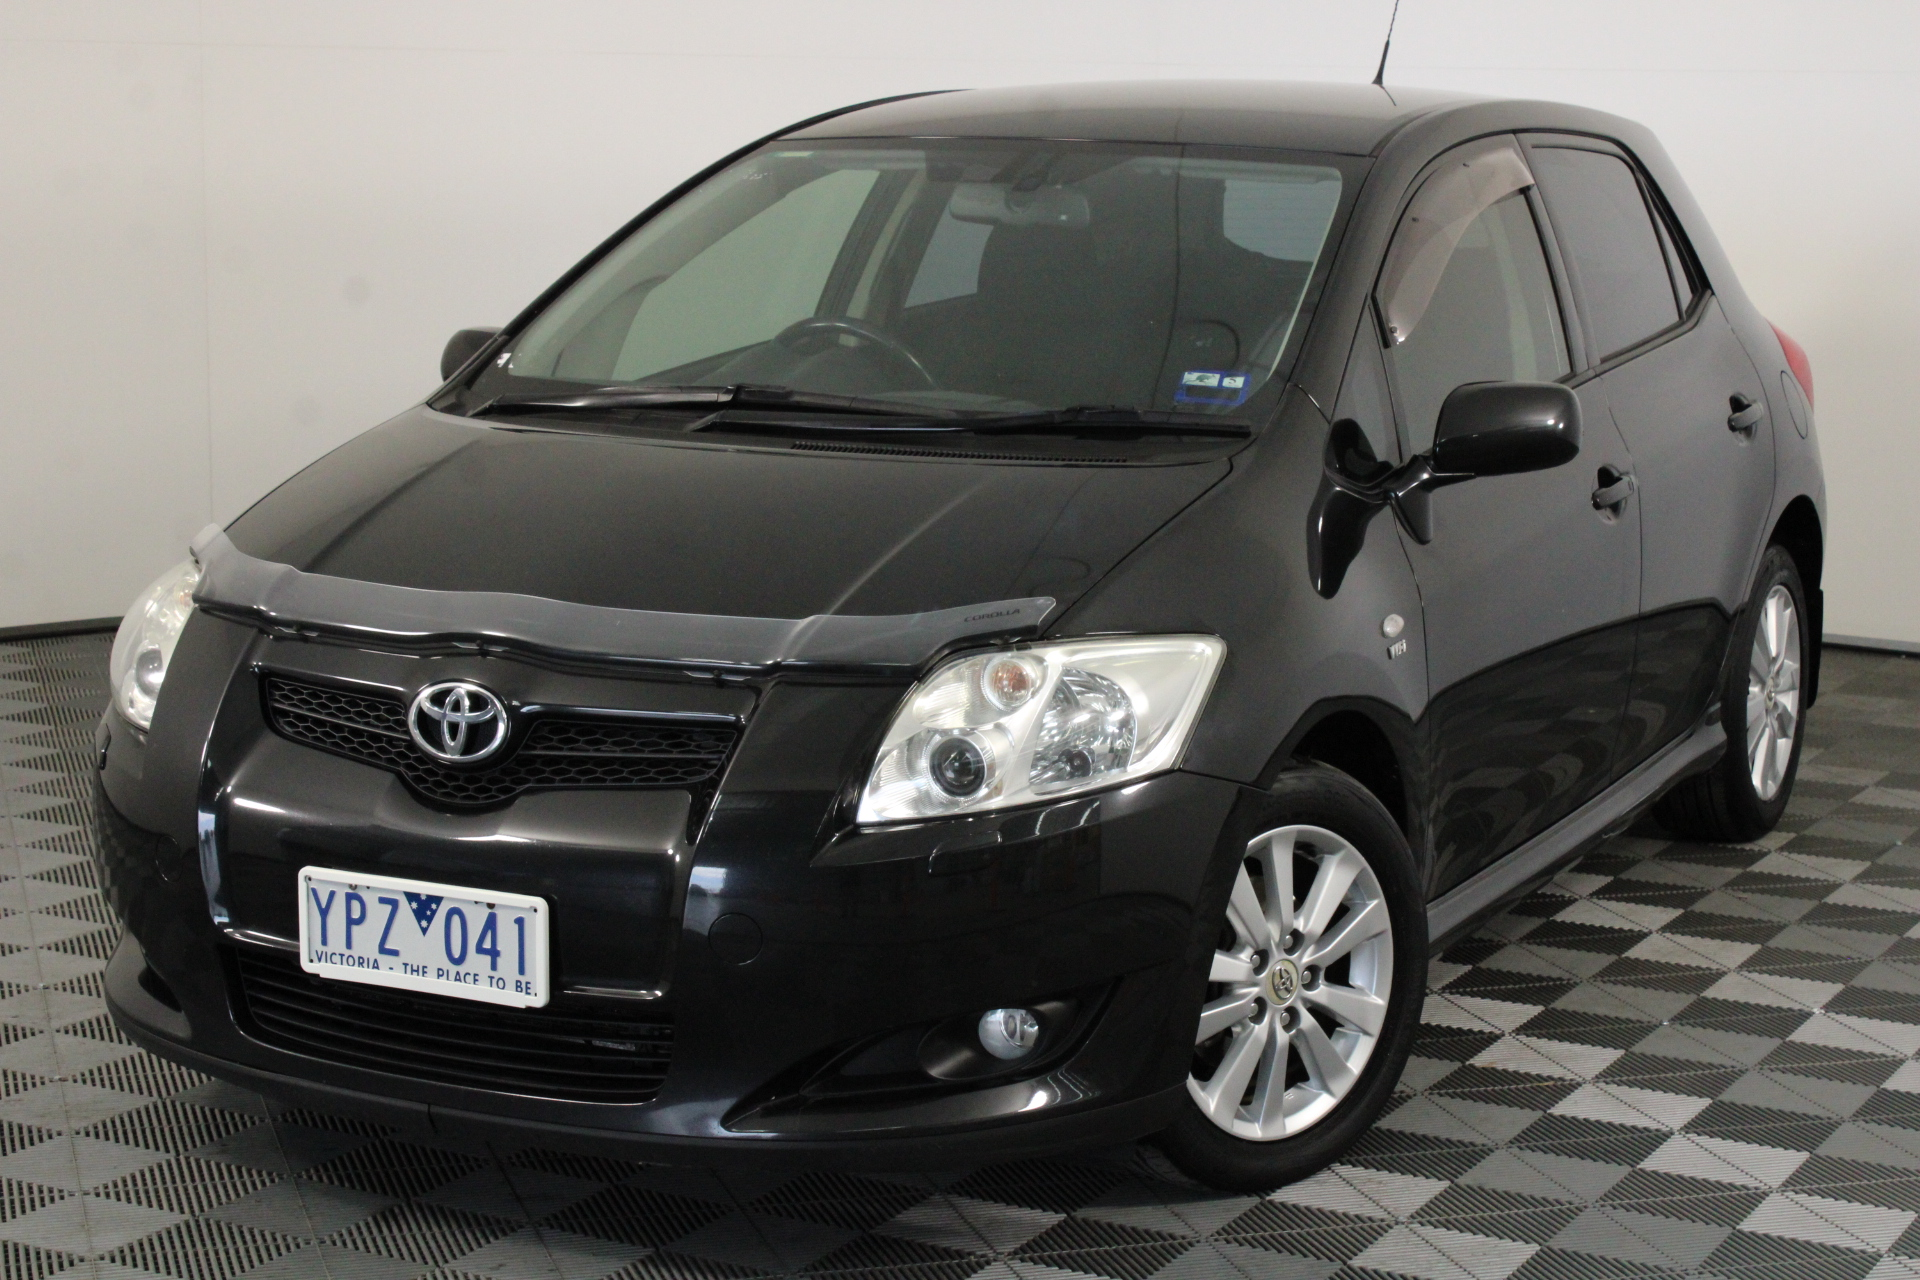 2009 Toyota Corolla LEVIN ZR ZRE152R Automatic Hatchback